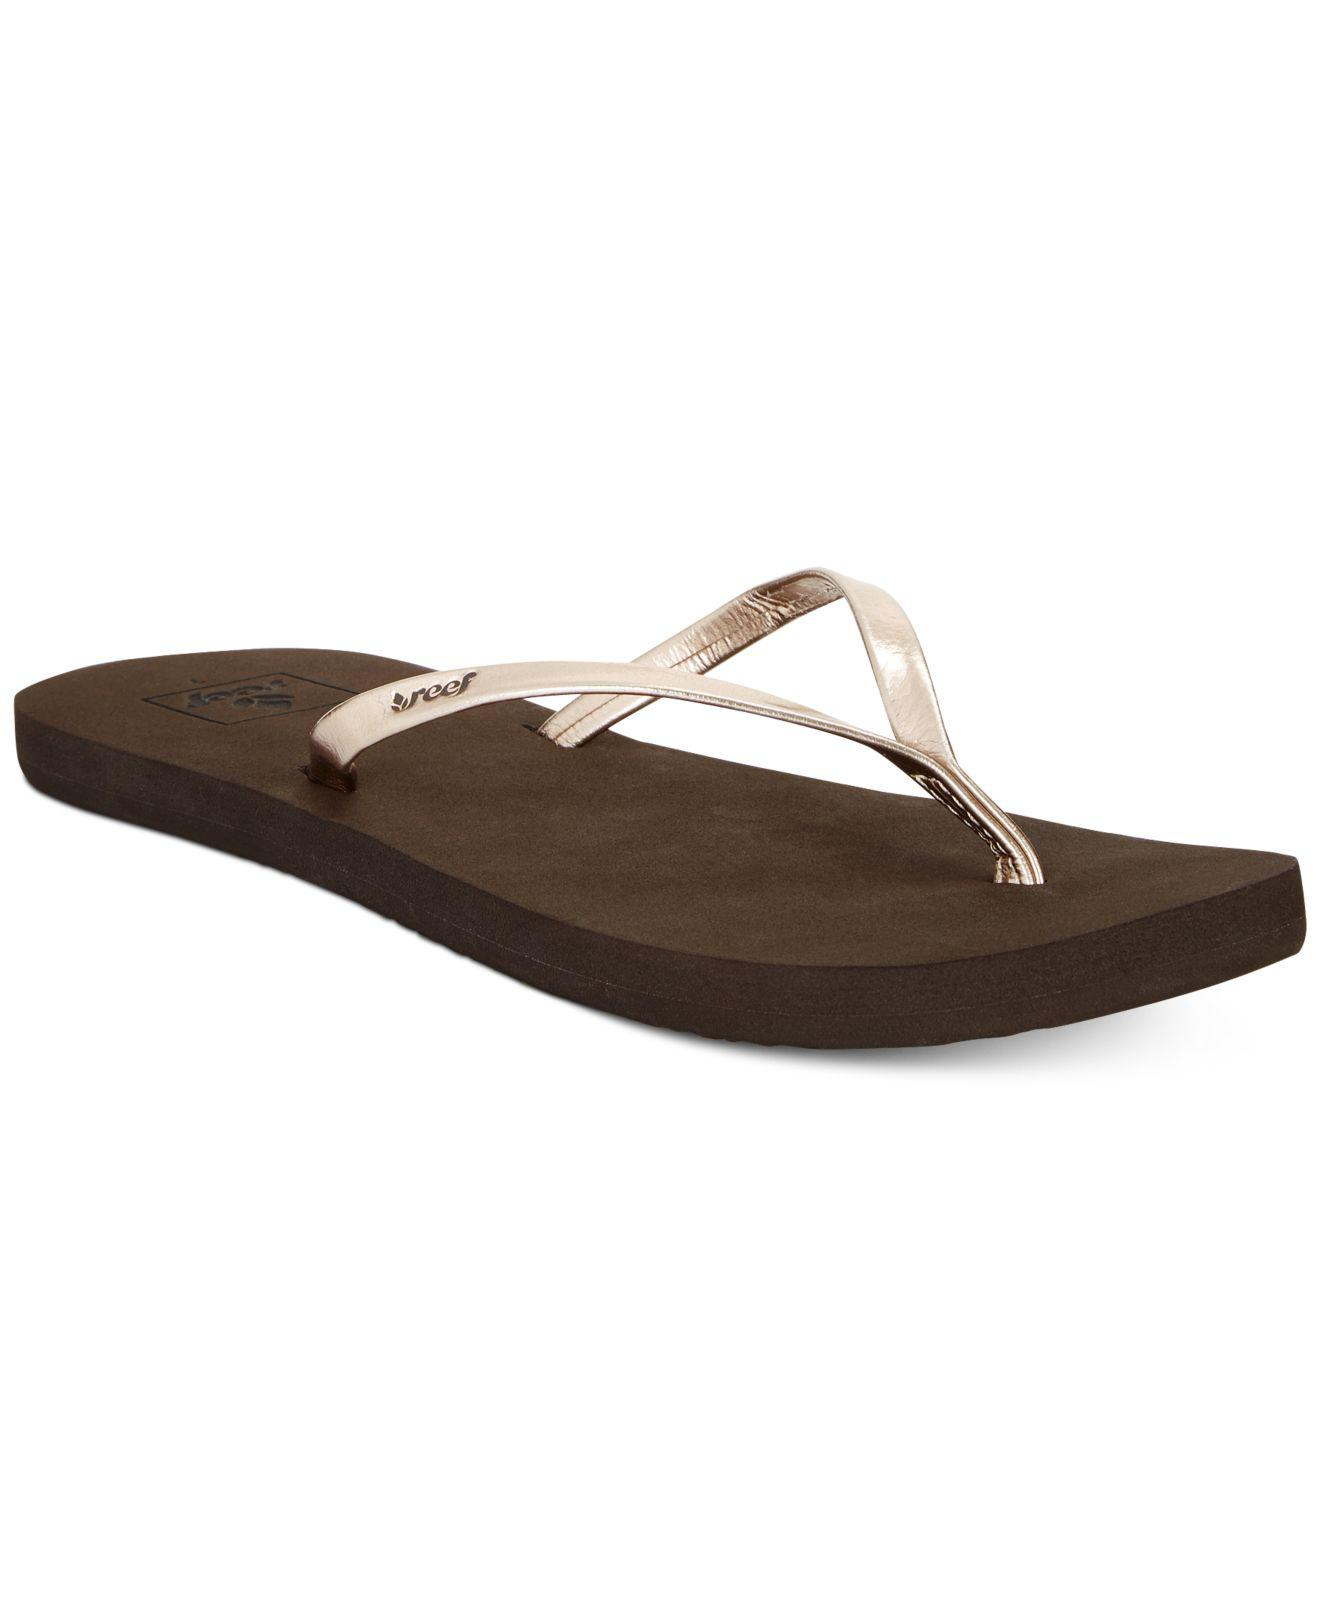 a9589efbc6b5 Lyst - Reef Bliss Nights Flip-flops in Brown